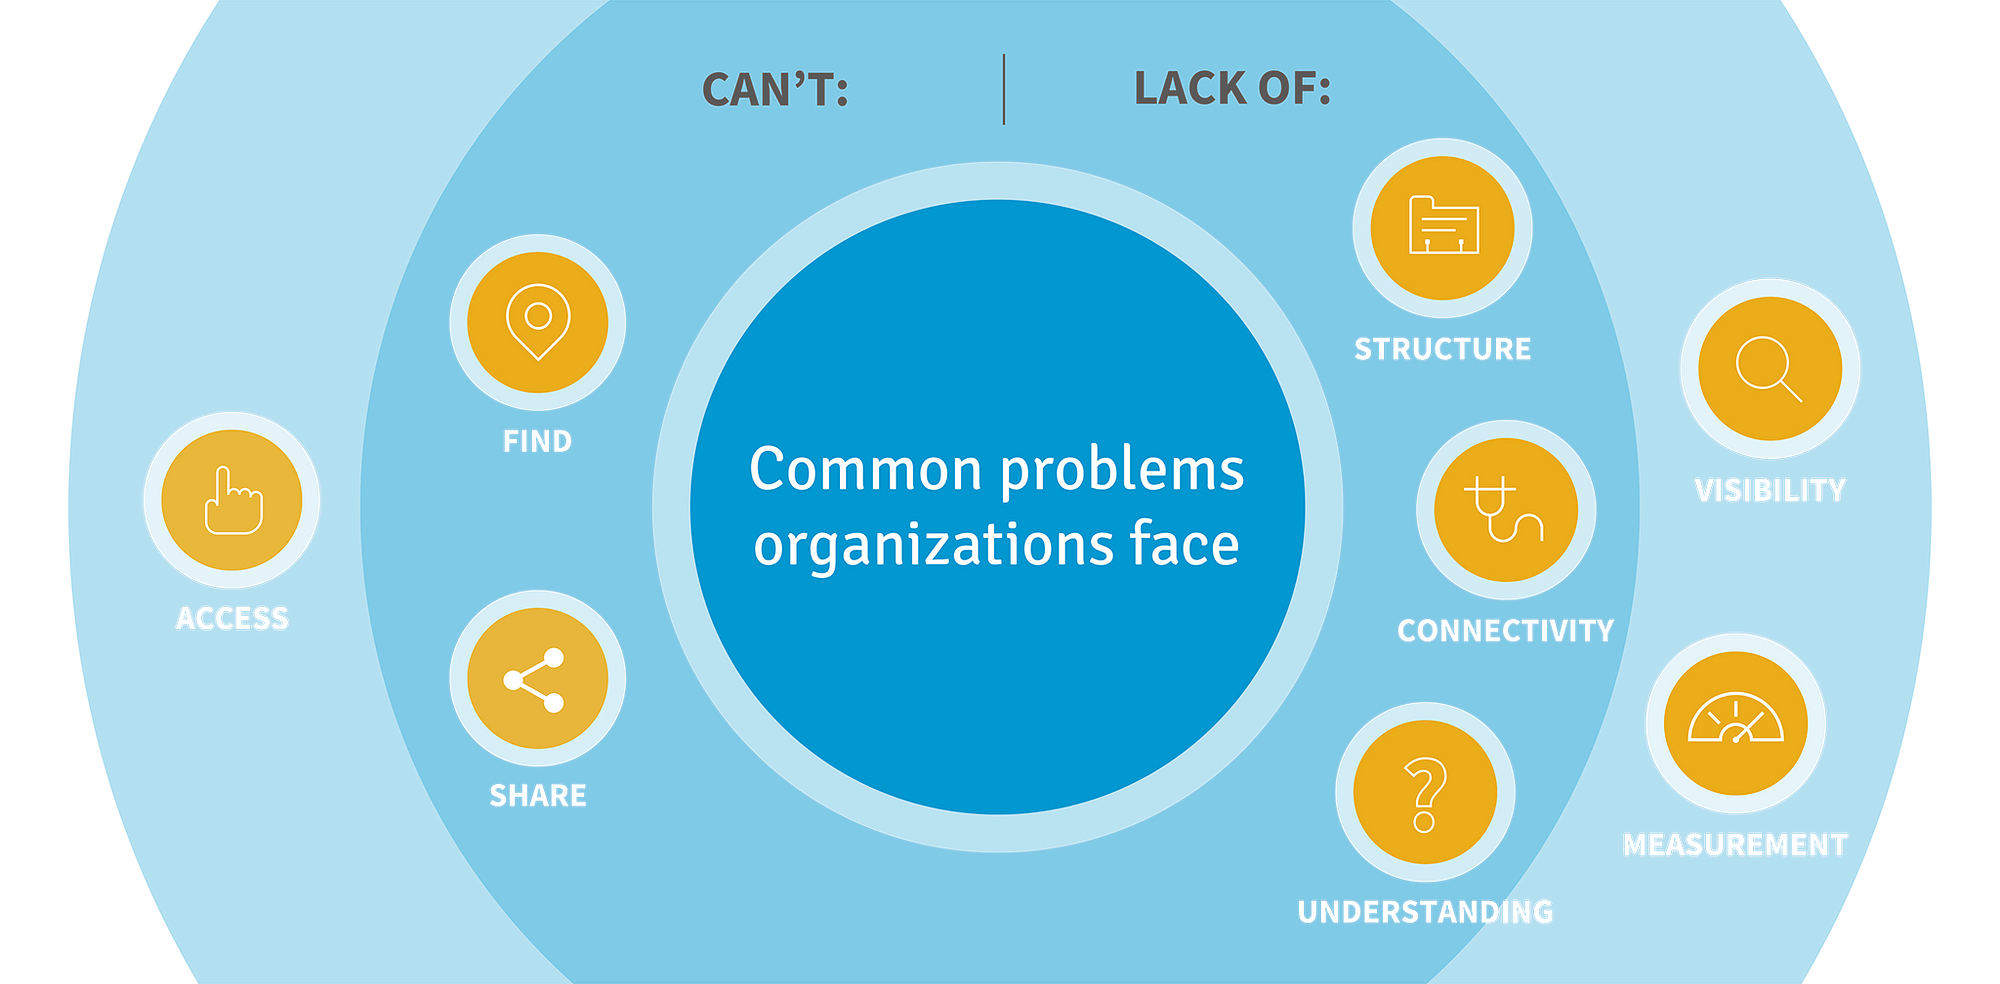 Common problems organizations face